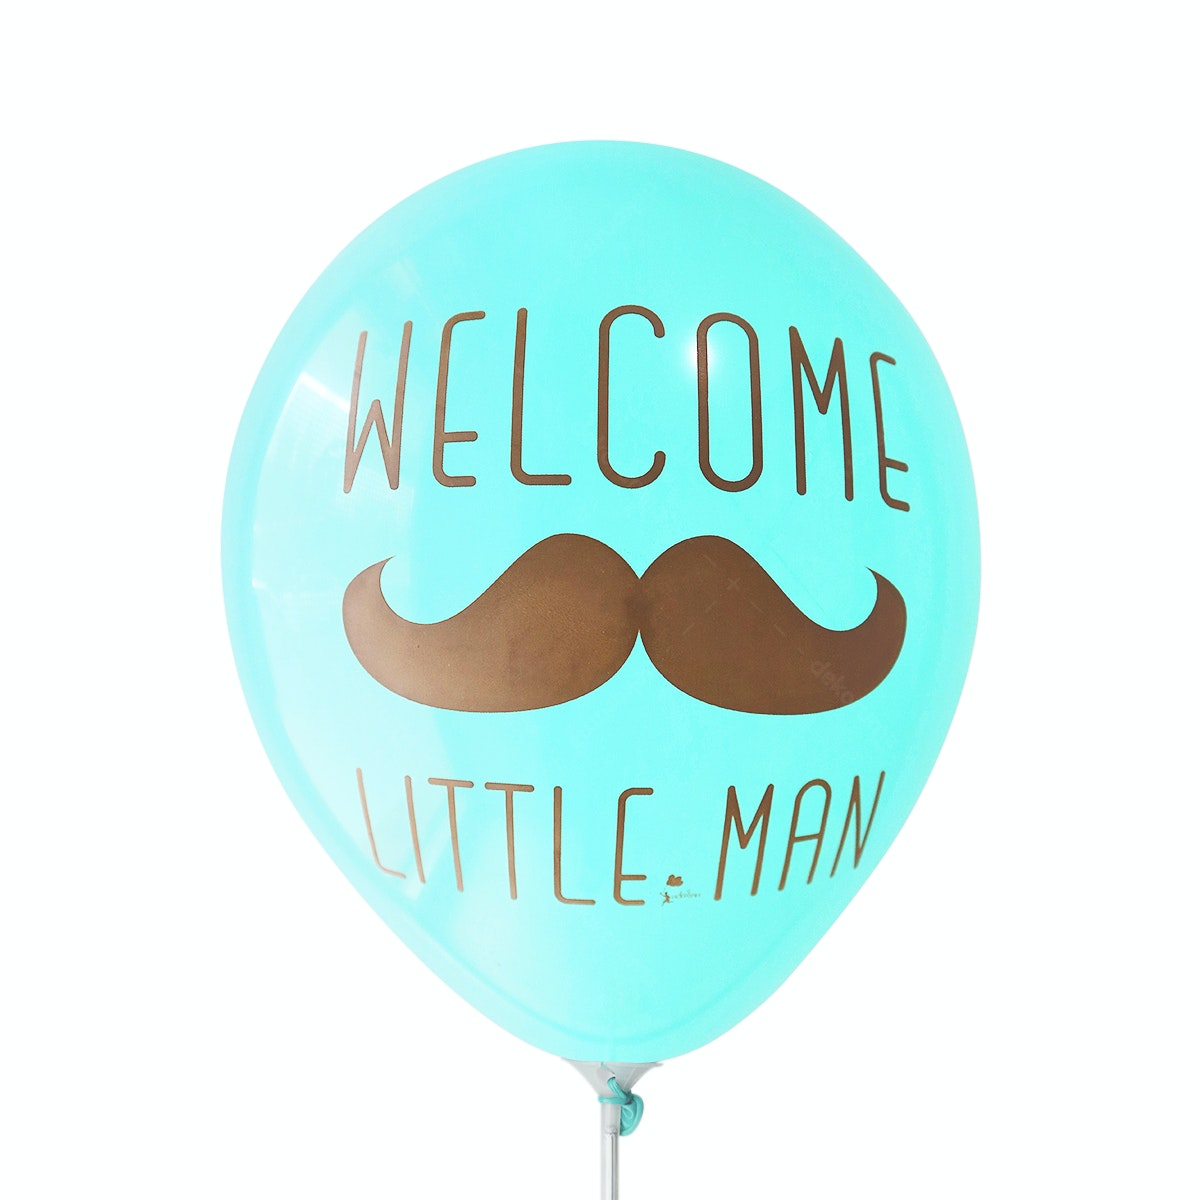 Adalima Balloon Balon Latex Welcome Little Man Azure QQ